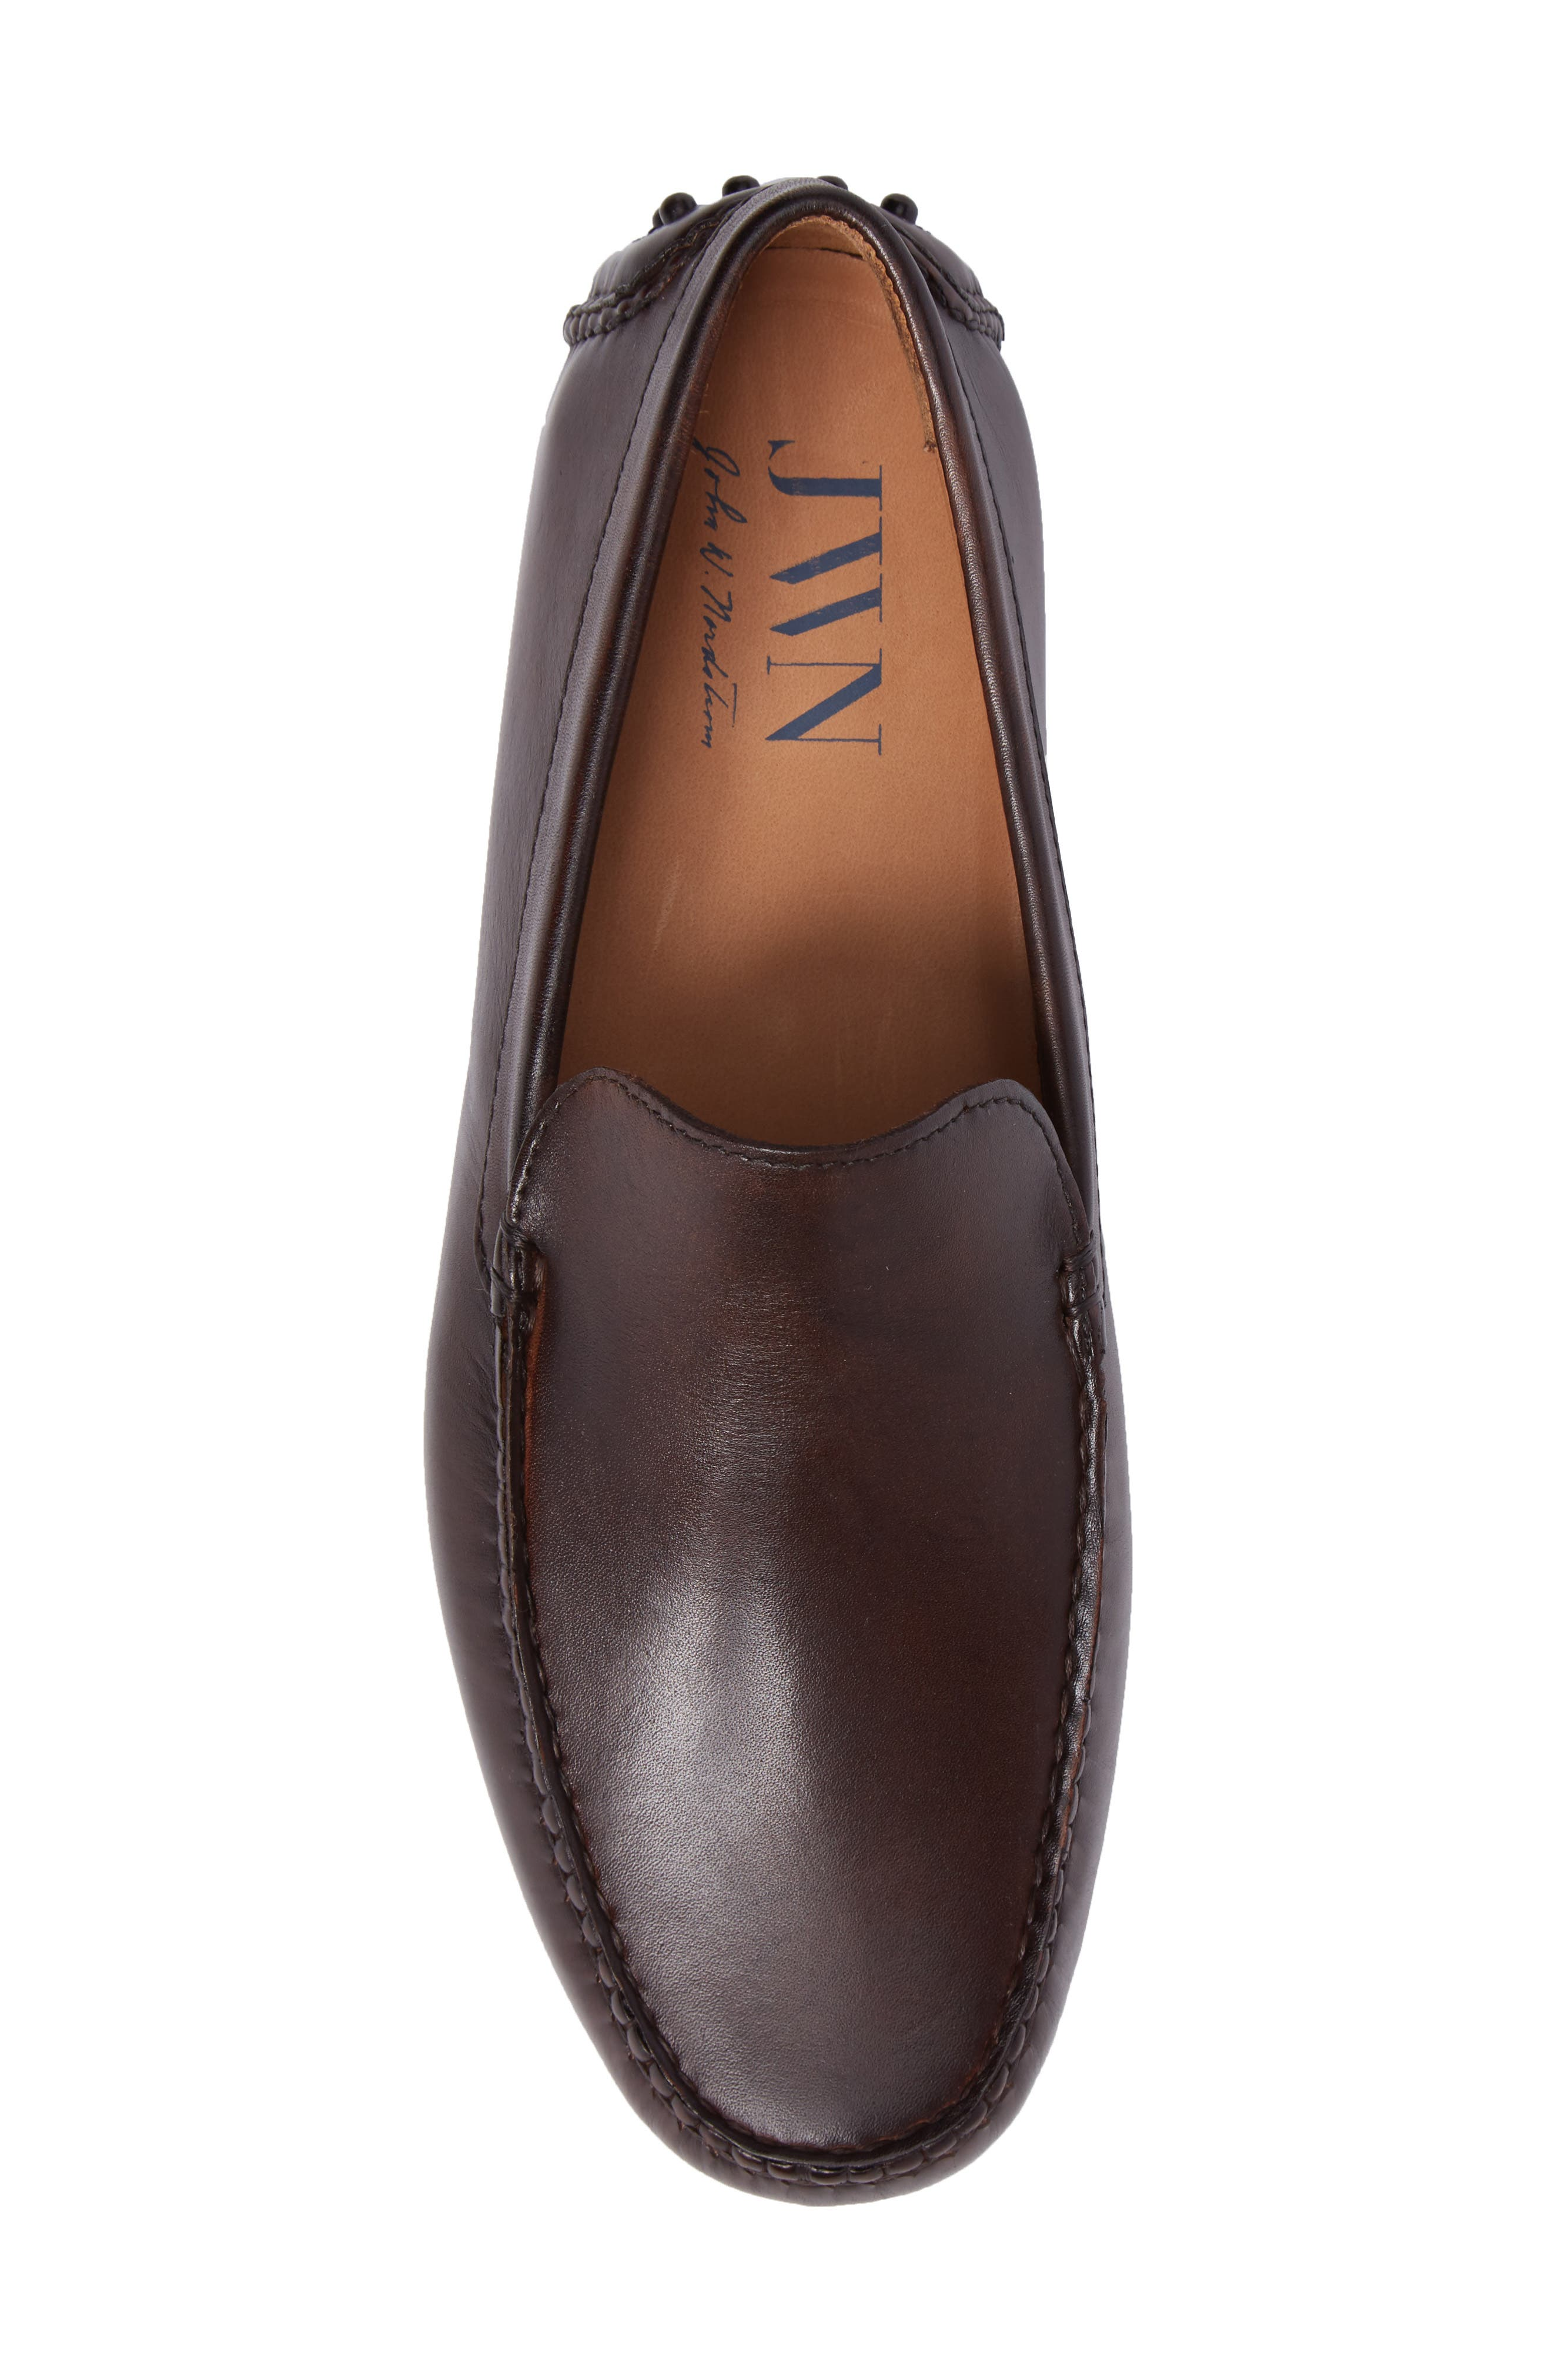 Cane Driving Shoe,                             Alternate thumbnail 5, color,                             Brown Leather